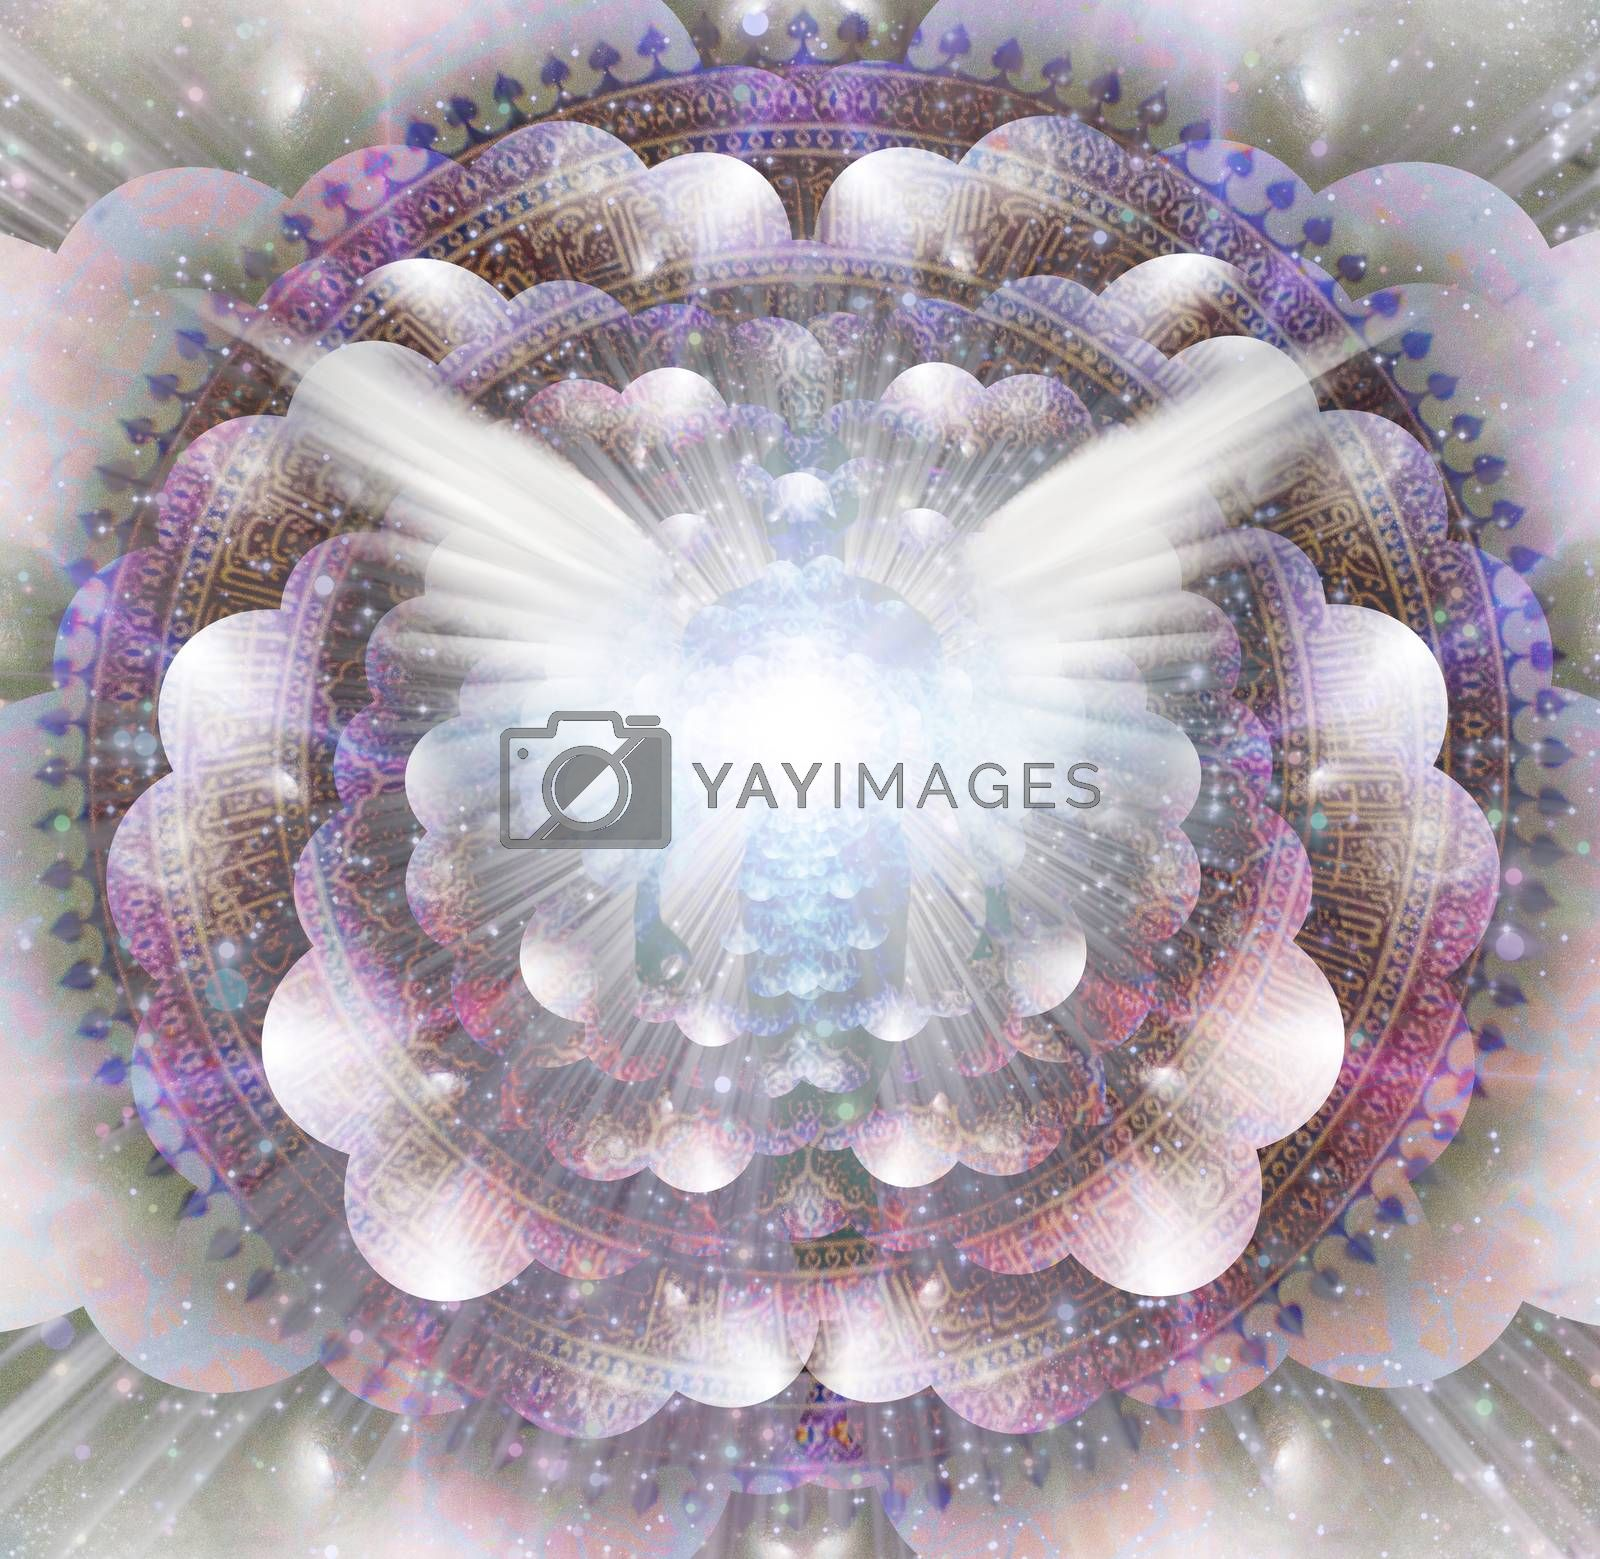 Shining wings and mans aura in a center of Indian mandala. Multi-layered spaces representing endless dimensions. 3D rendering